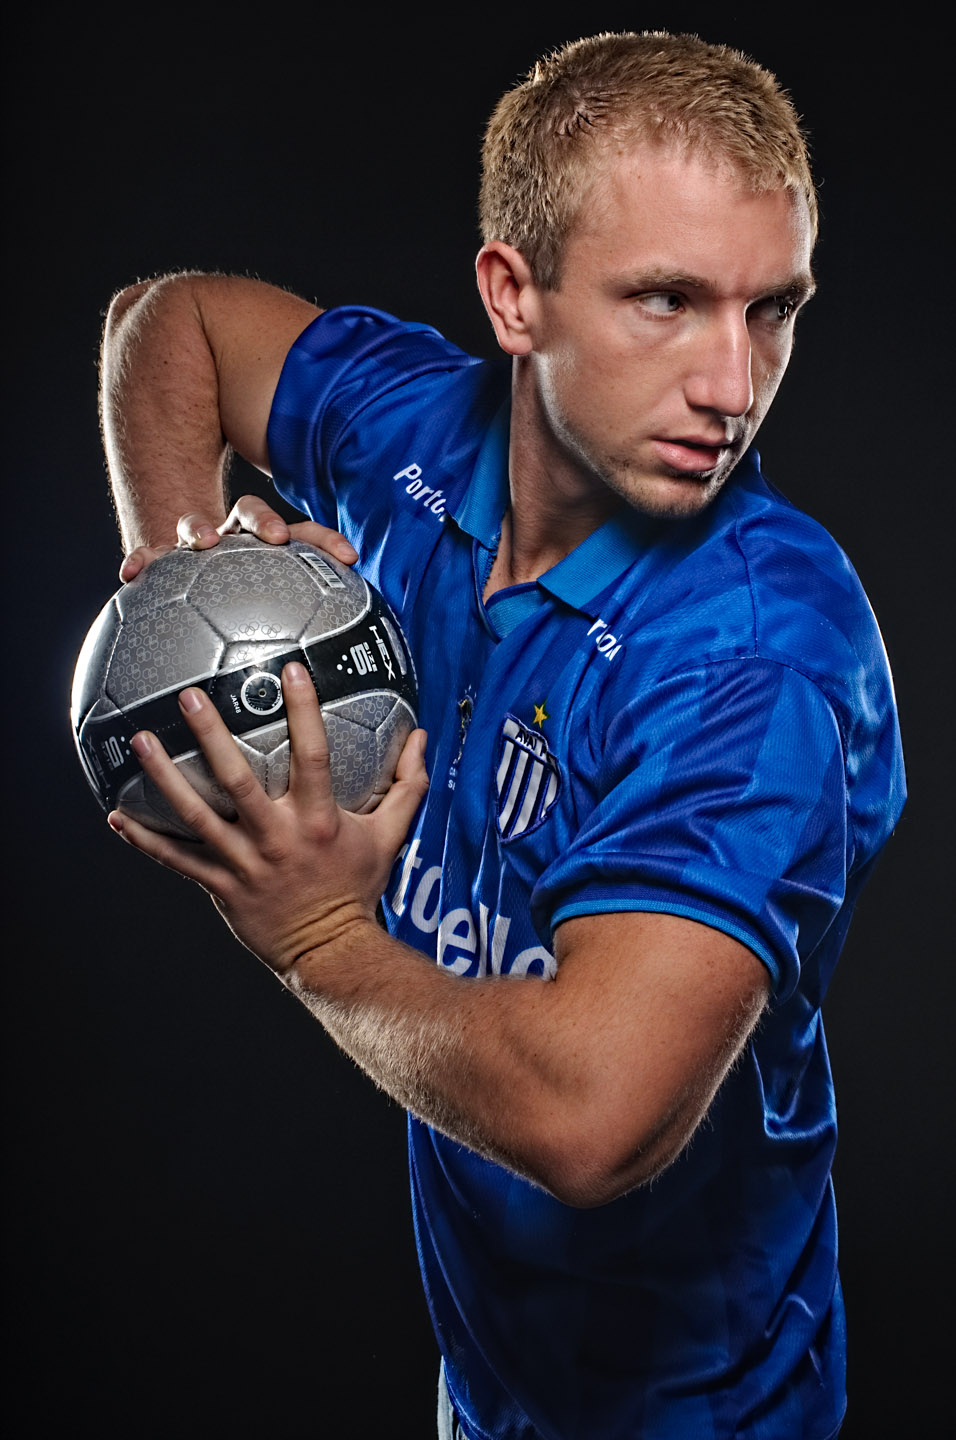 Zeb models in a soccer jersey and soccer ball